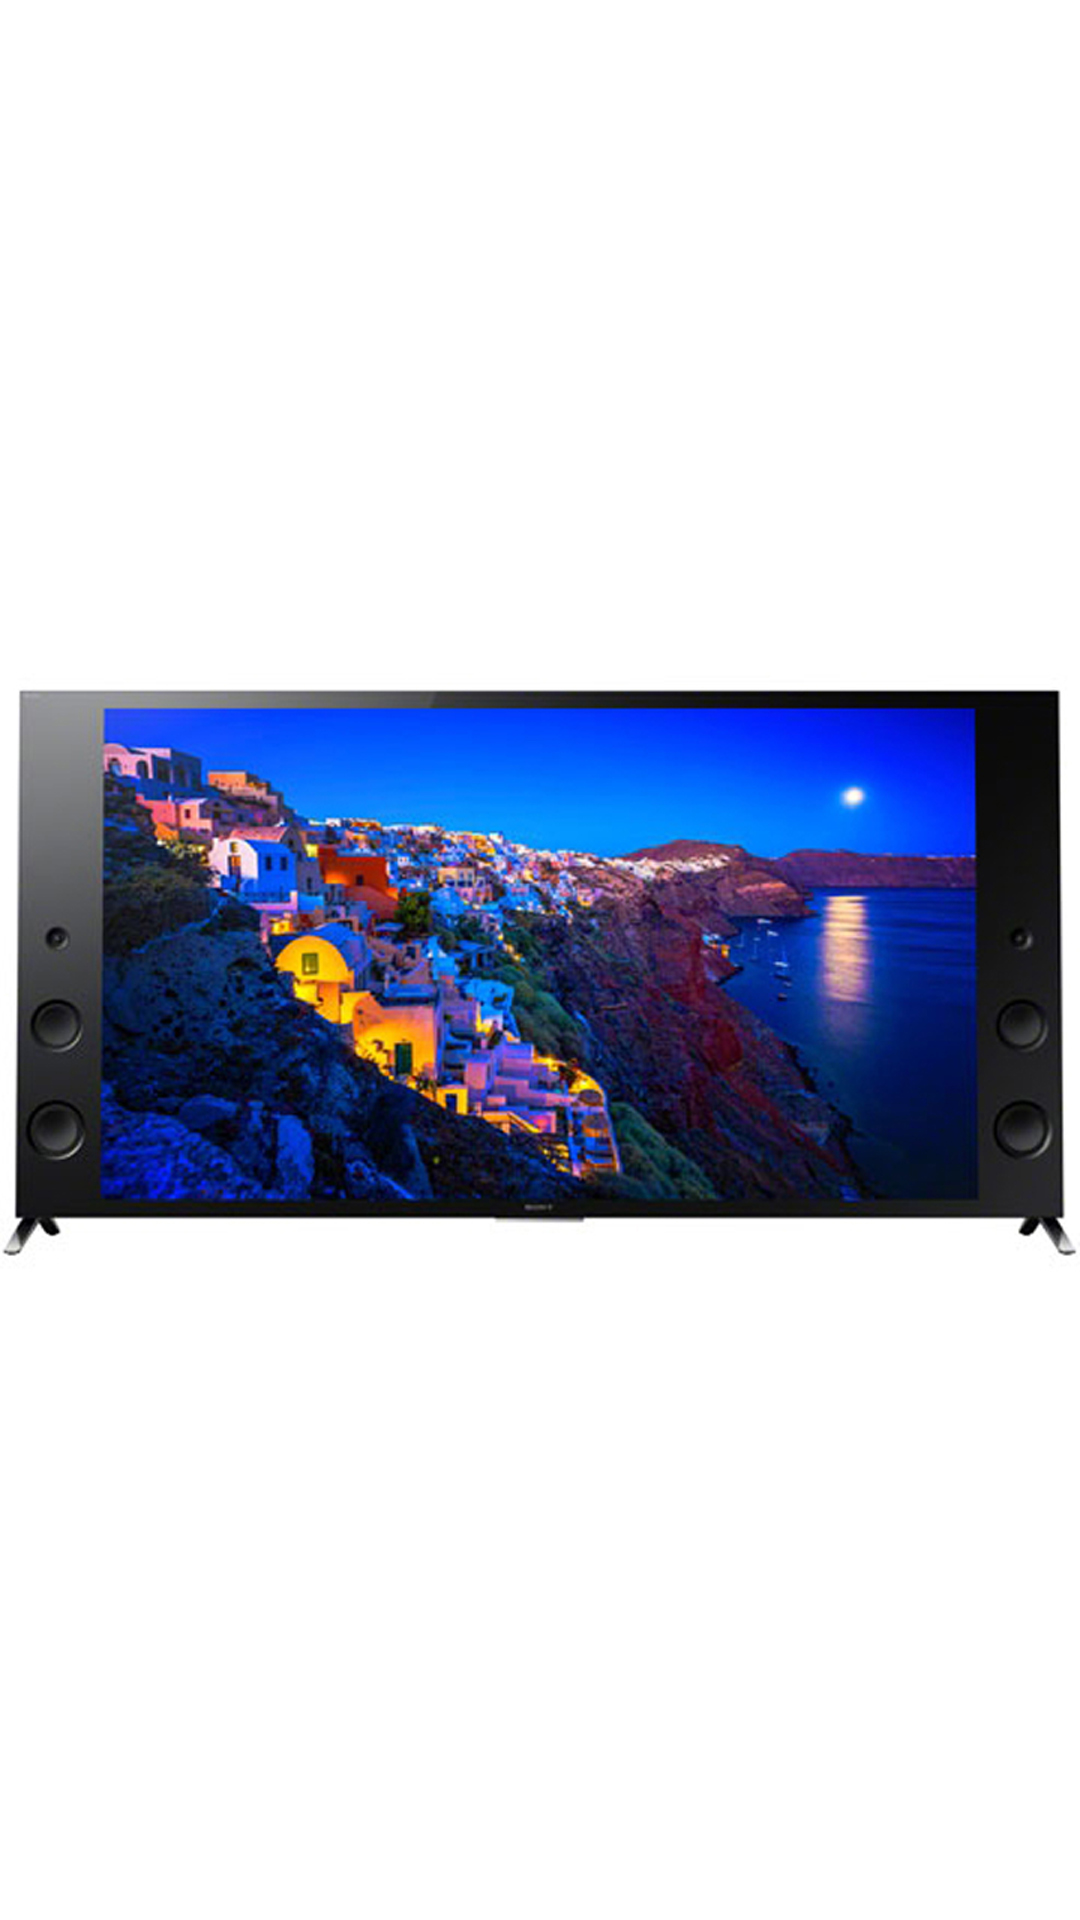 Sony KD-55X9300C 139.7 cm (55) Smart 3D LED TV 4K (Ultra HD)